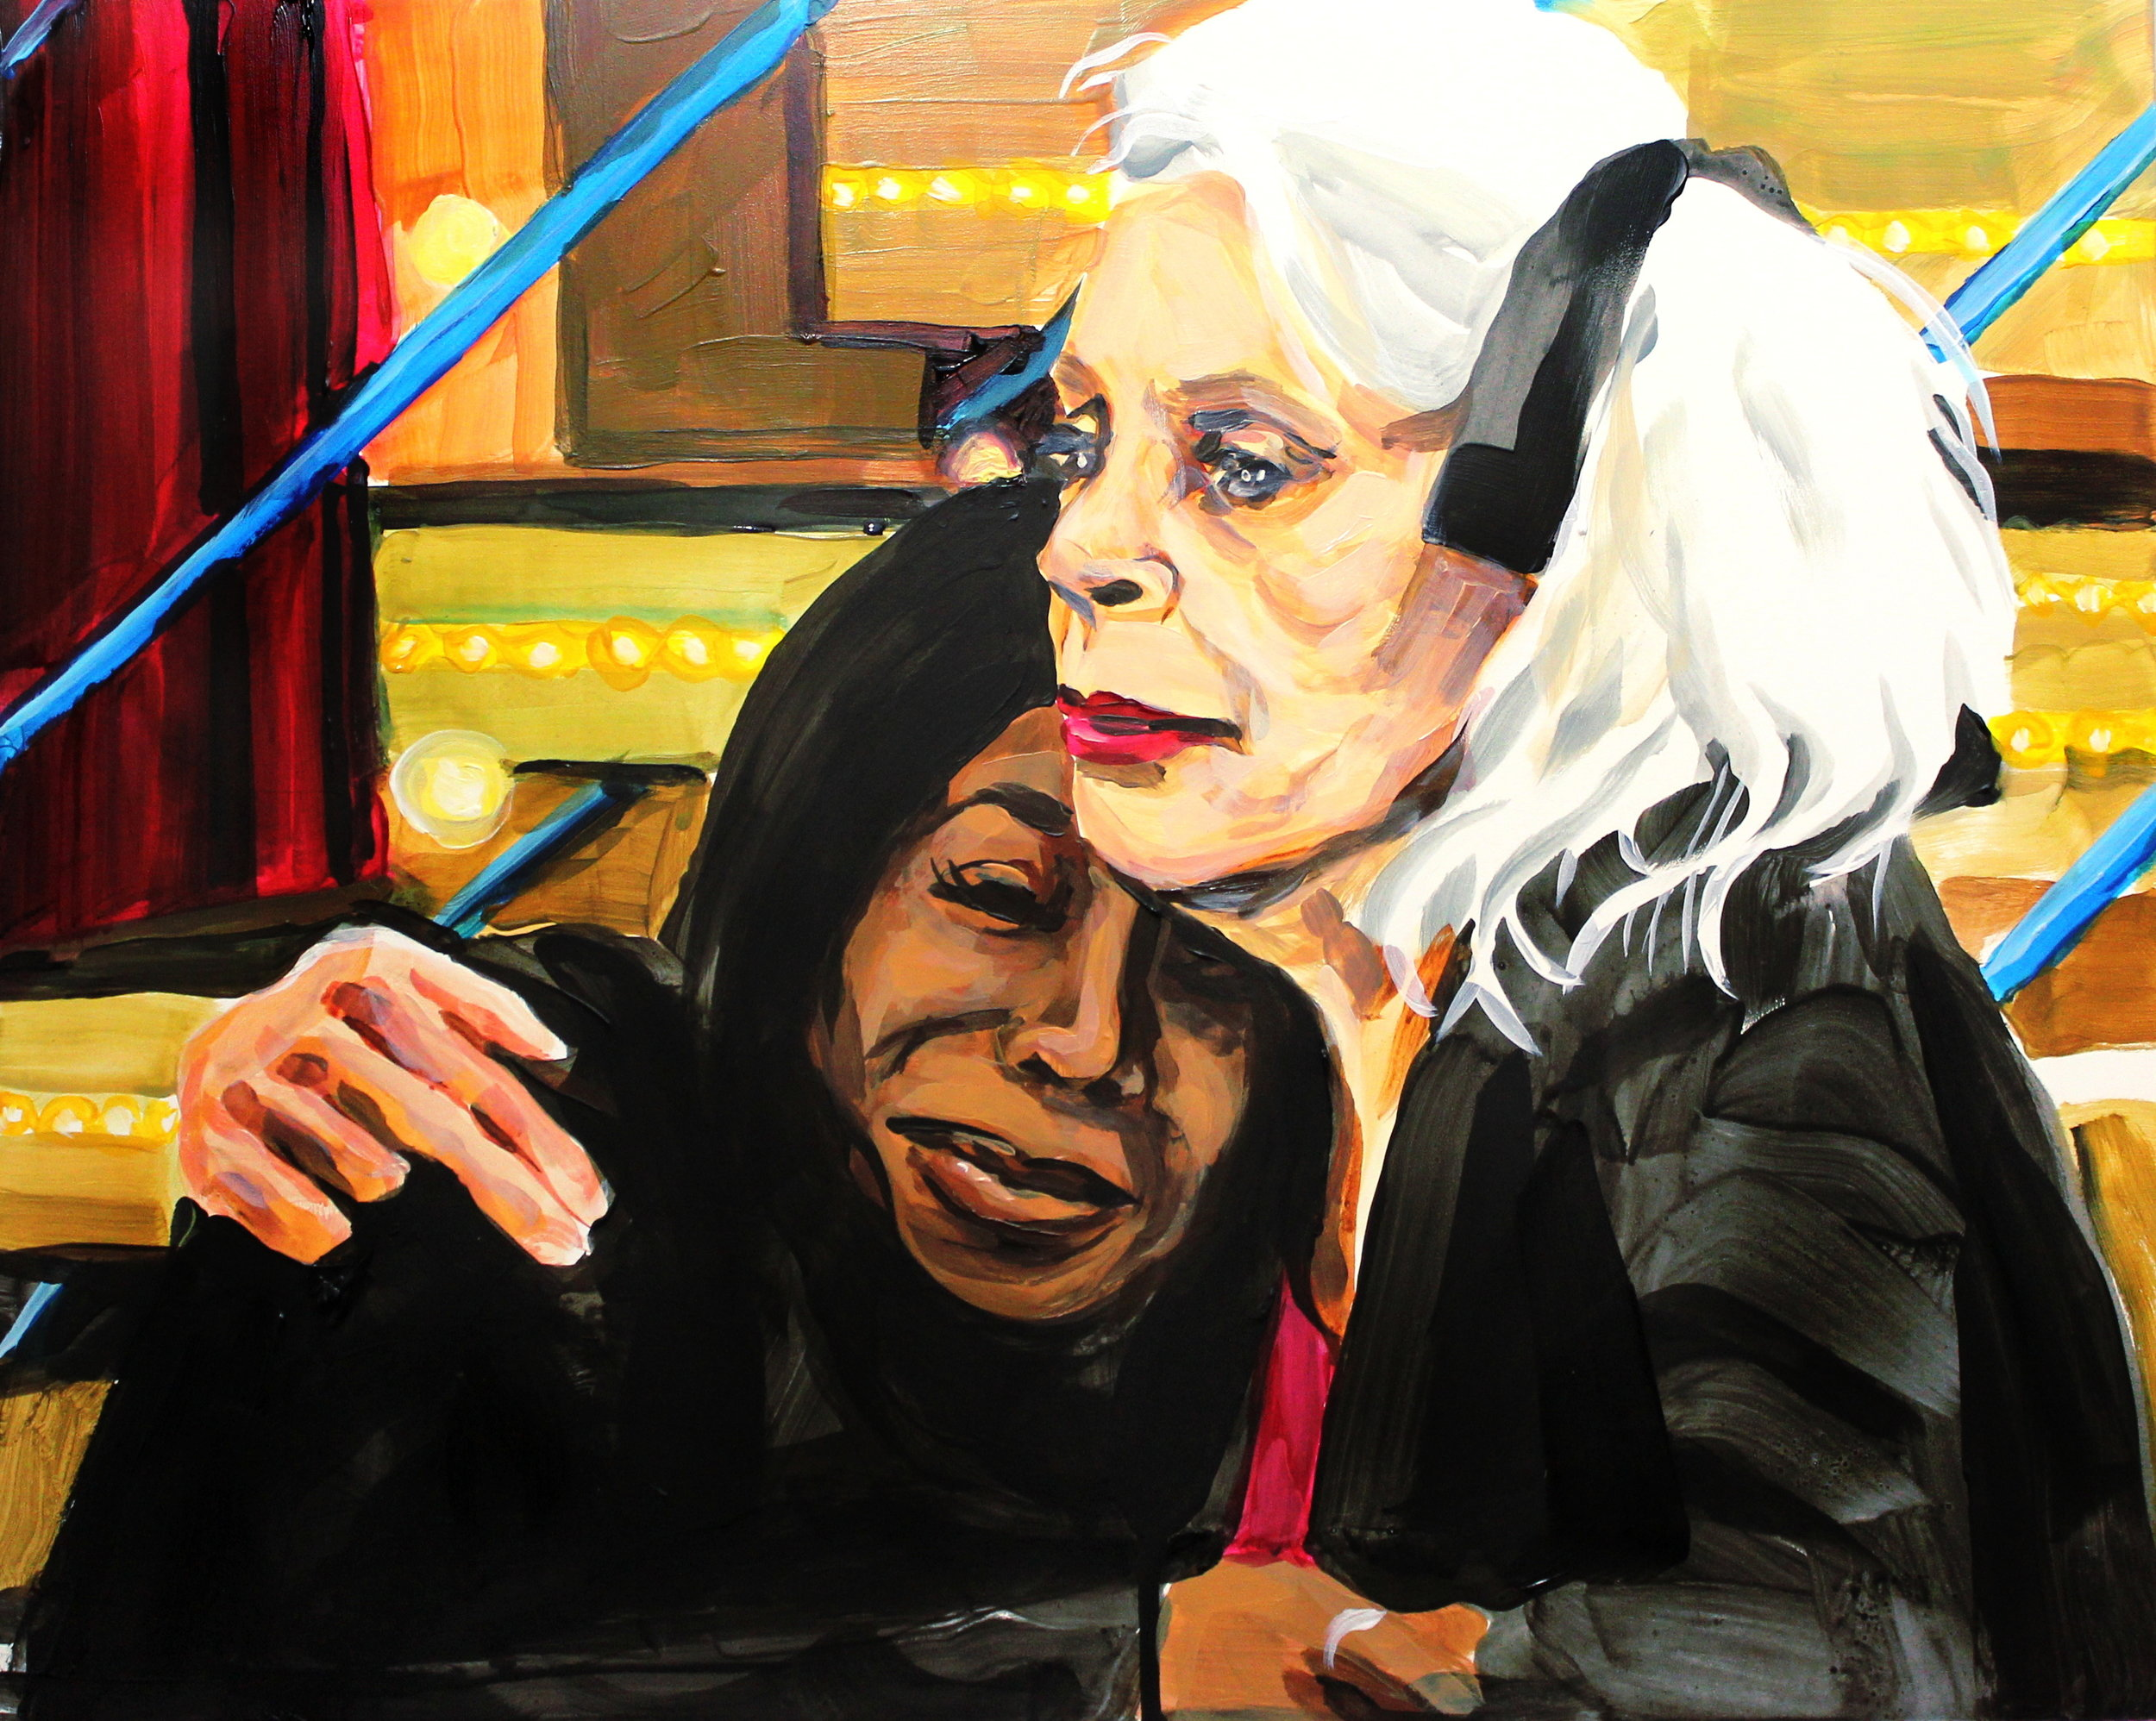 Laura Collins Tiffany Pollard Being Comforted by Angie Bowie After David's Death 16x20 acrylic on panel 2018.JPG